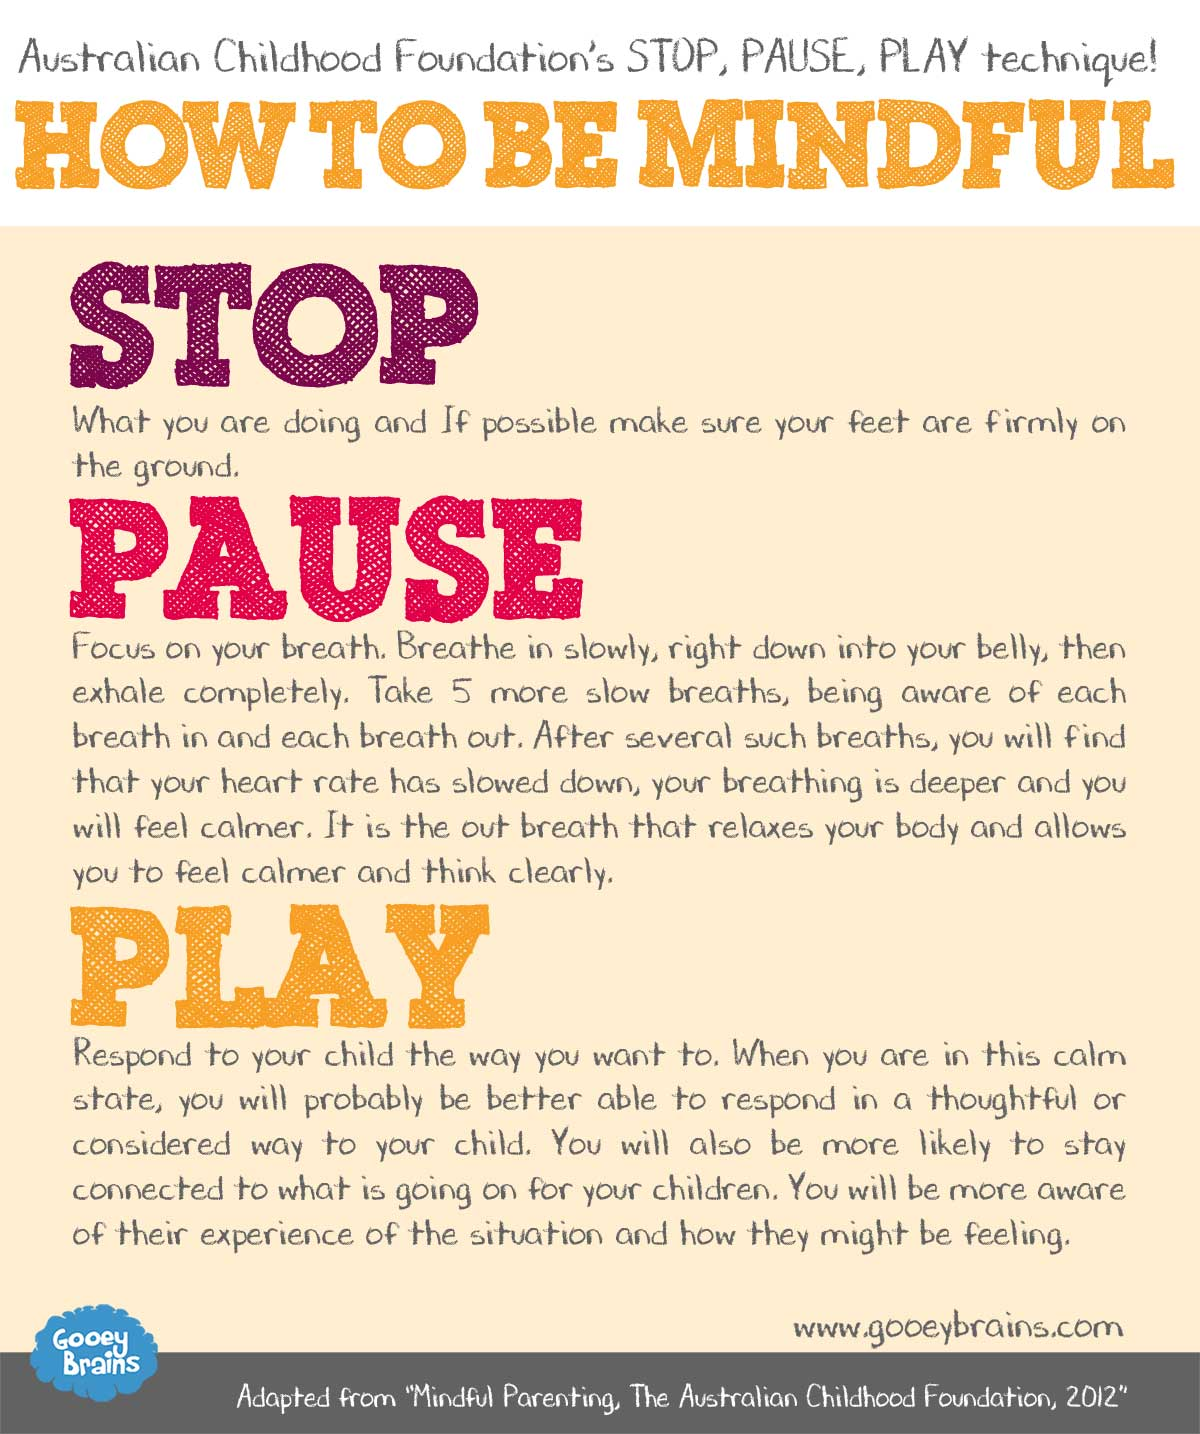 How to be mindful. Stop pause play